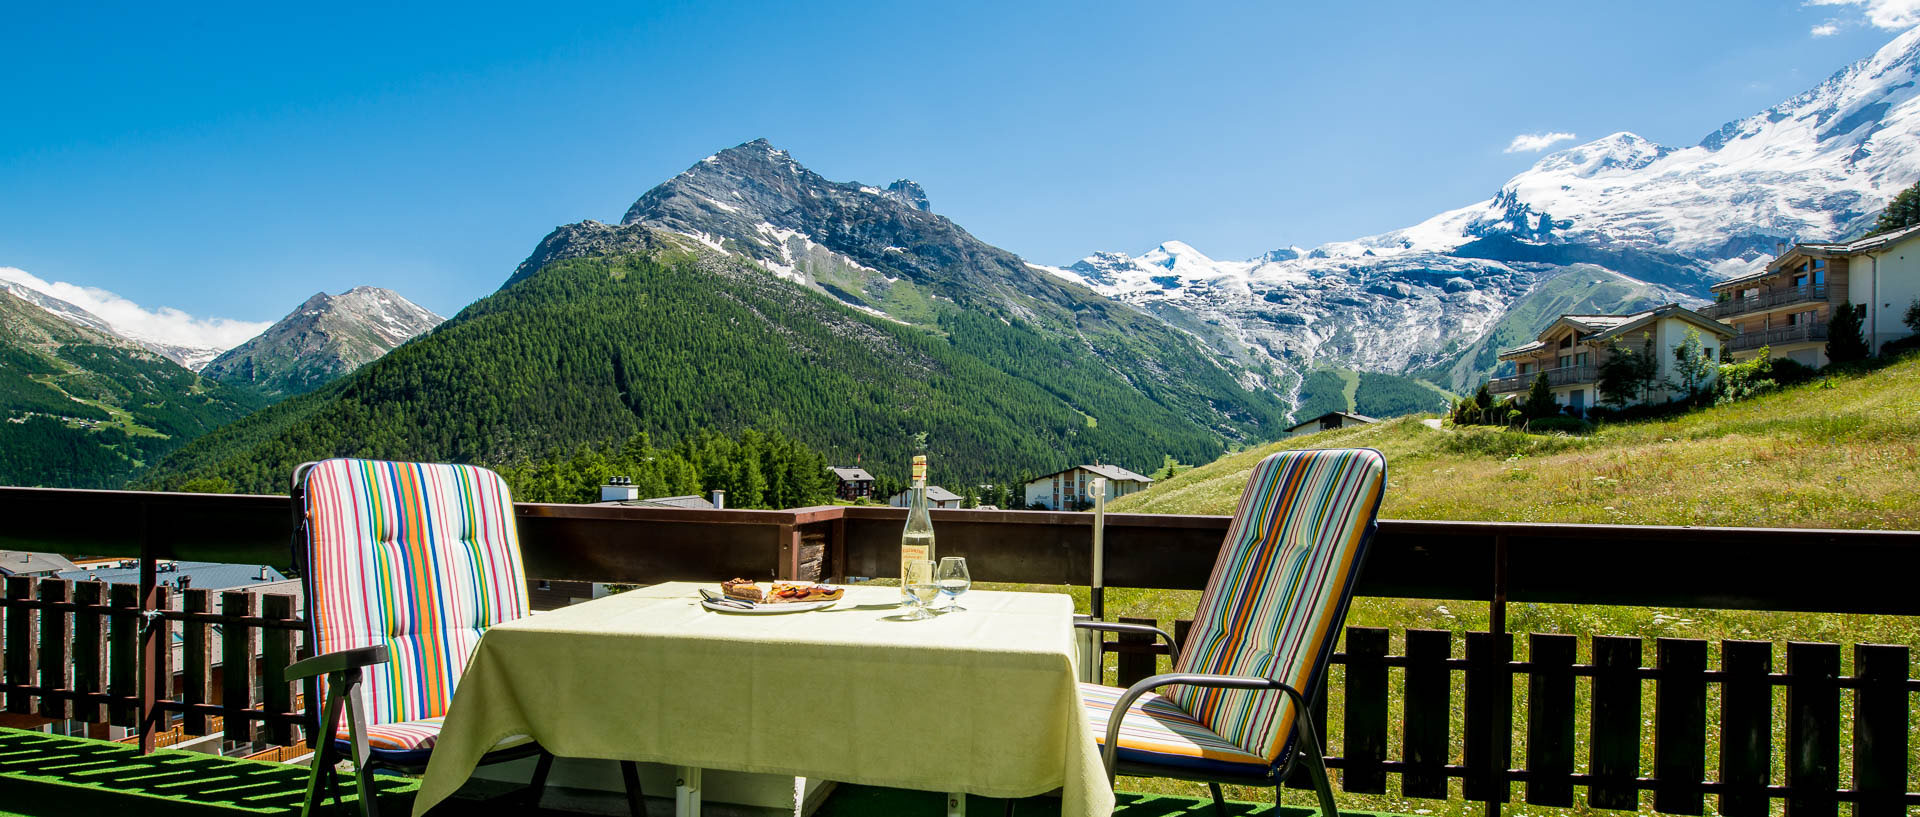 saas fee buddhist singles Hotel the larix is a charming family-run hotel located in saas-fee,  hotel the larix, saas-fee (switzerland) deals  • single room south.